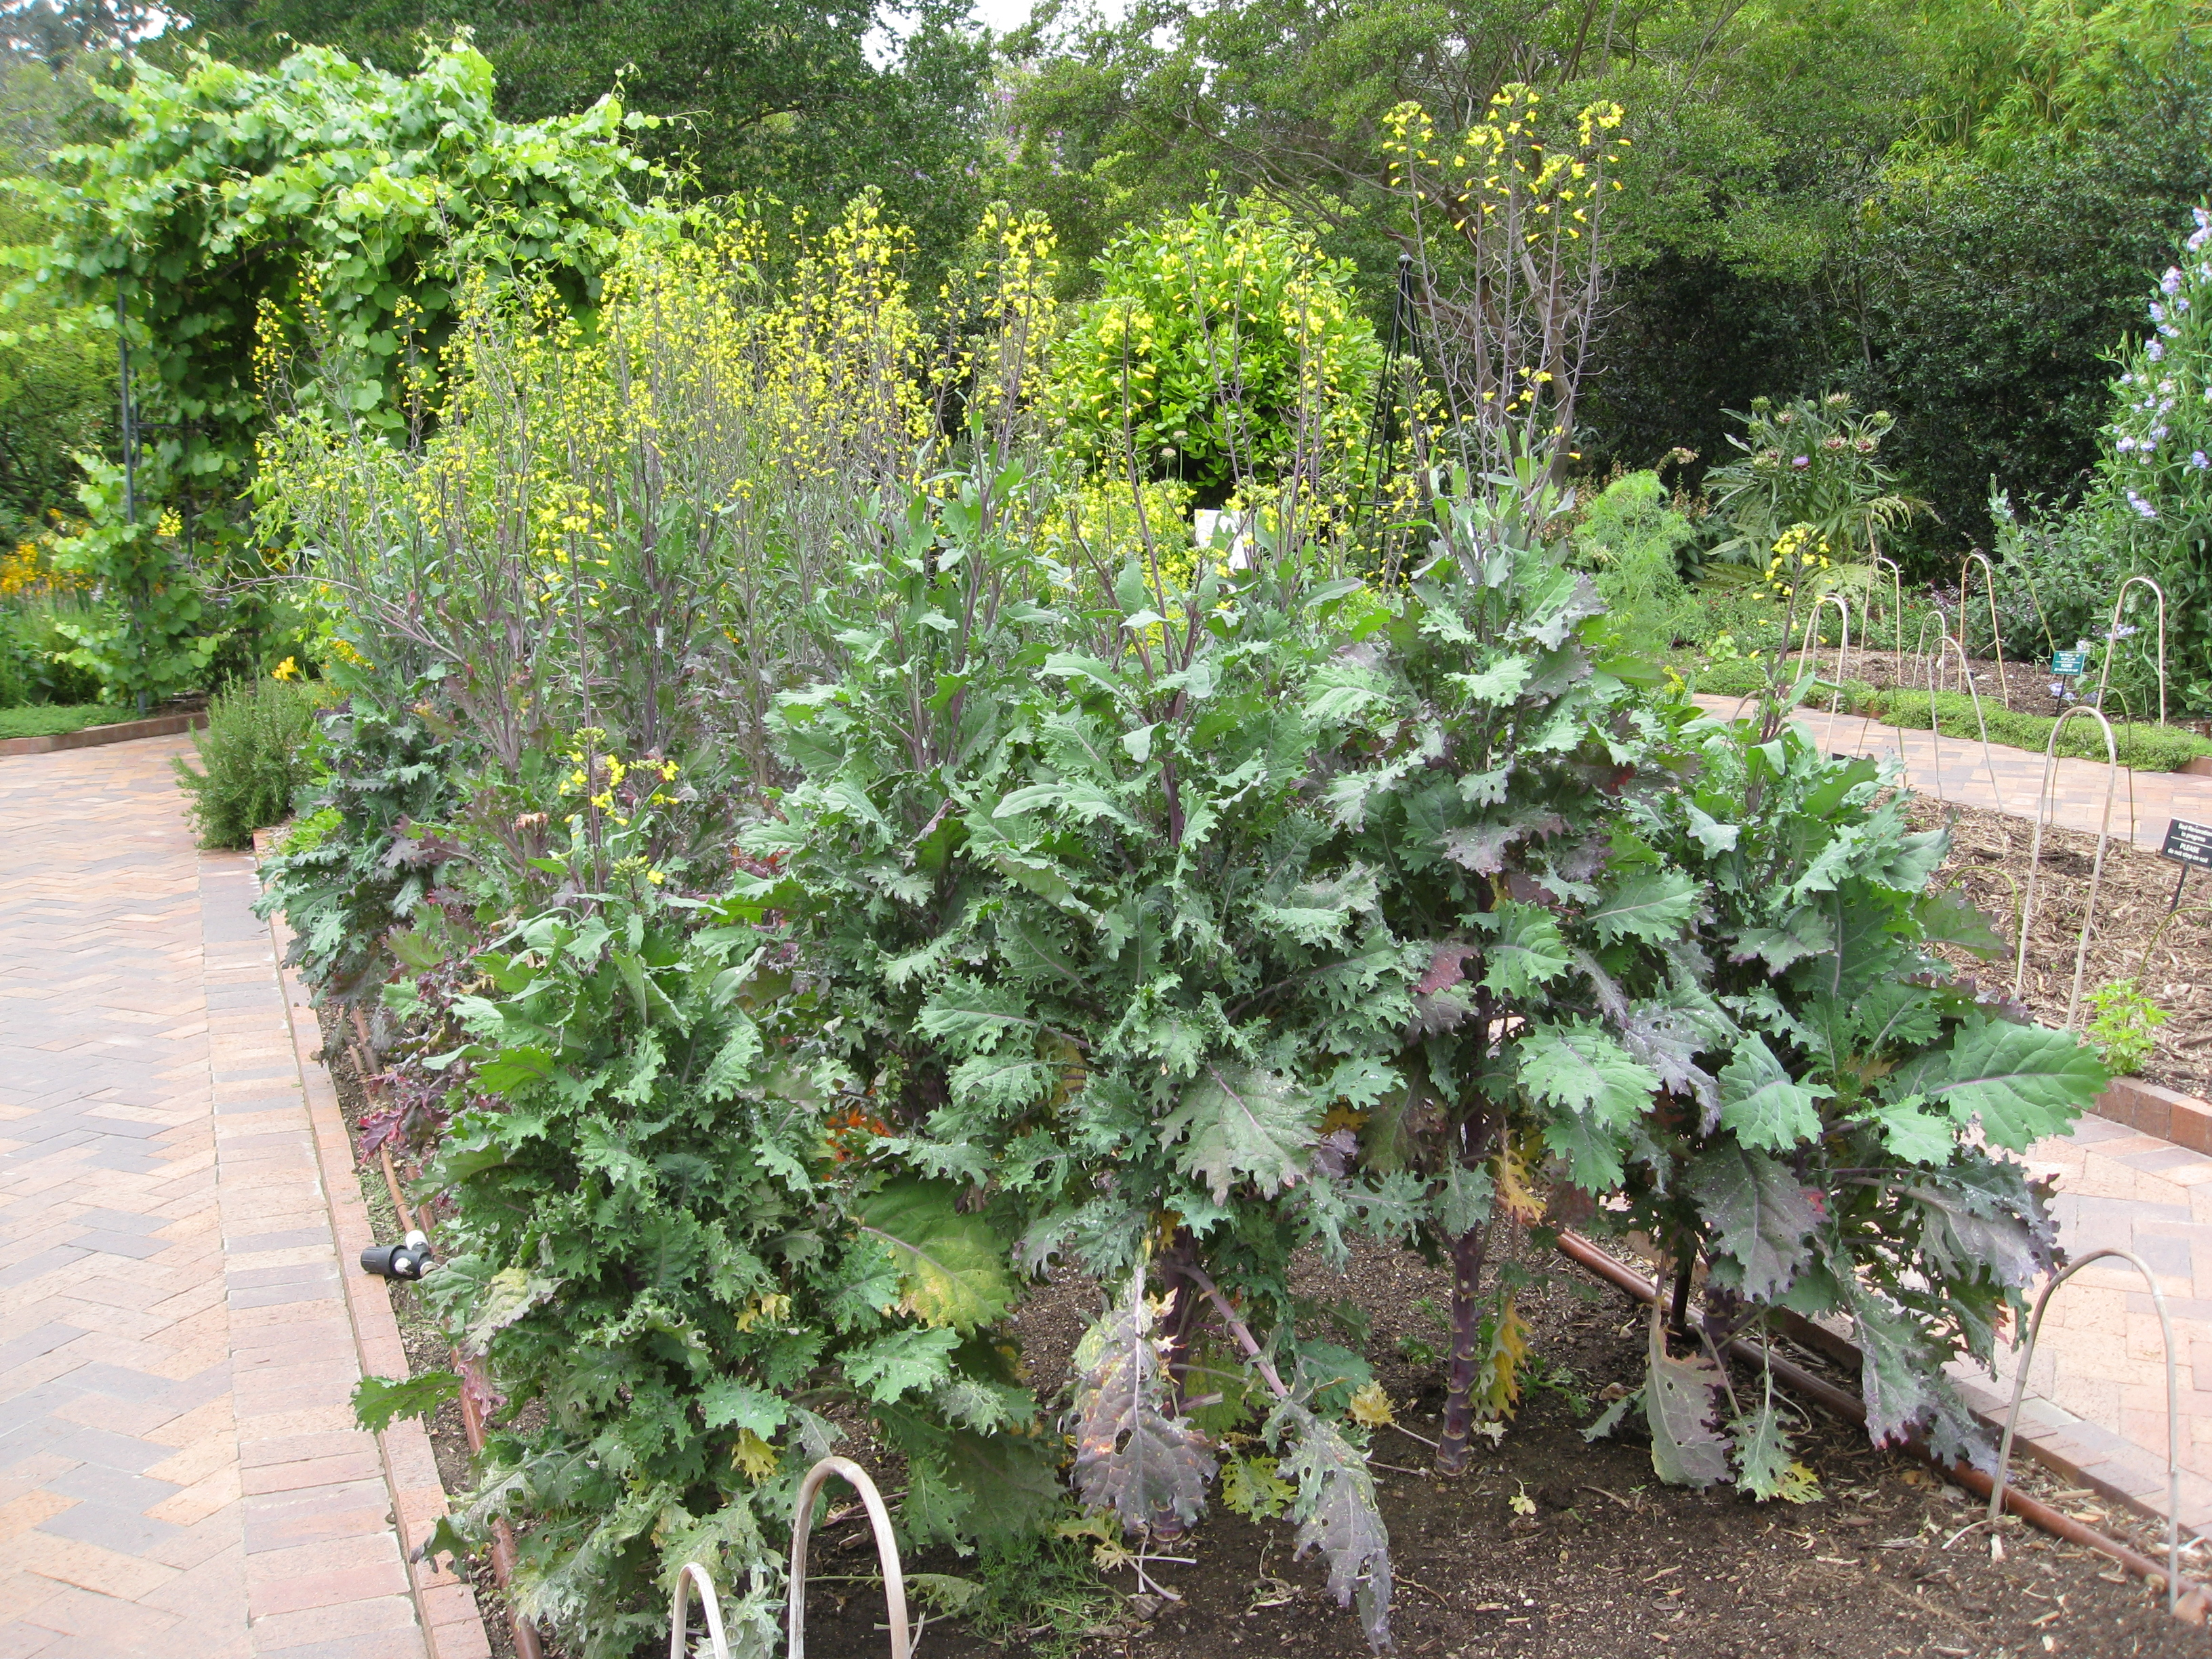 Kale bolts to seed and will soon make way for other plants in the garden.